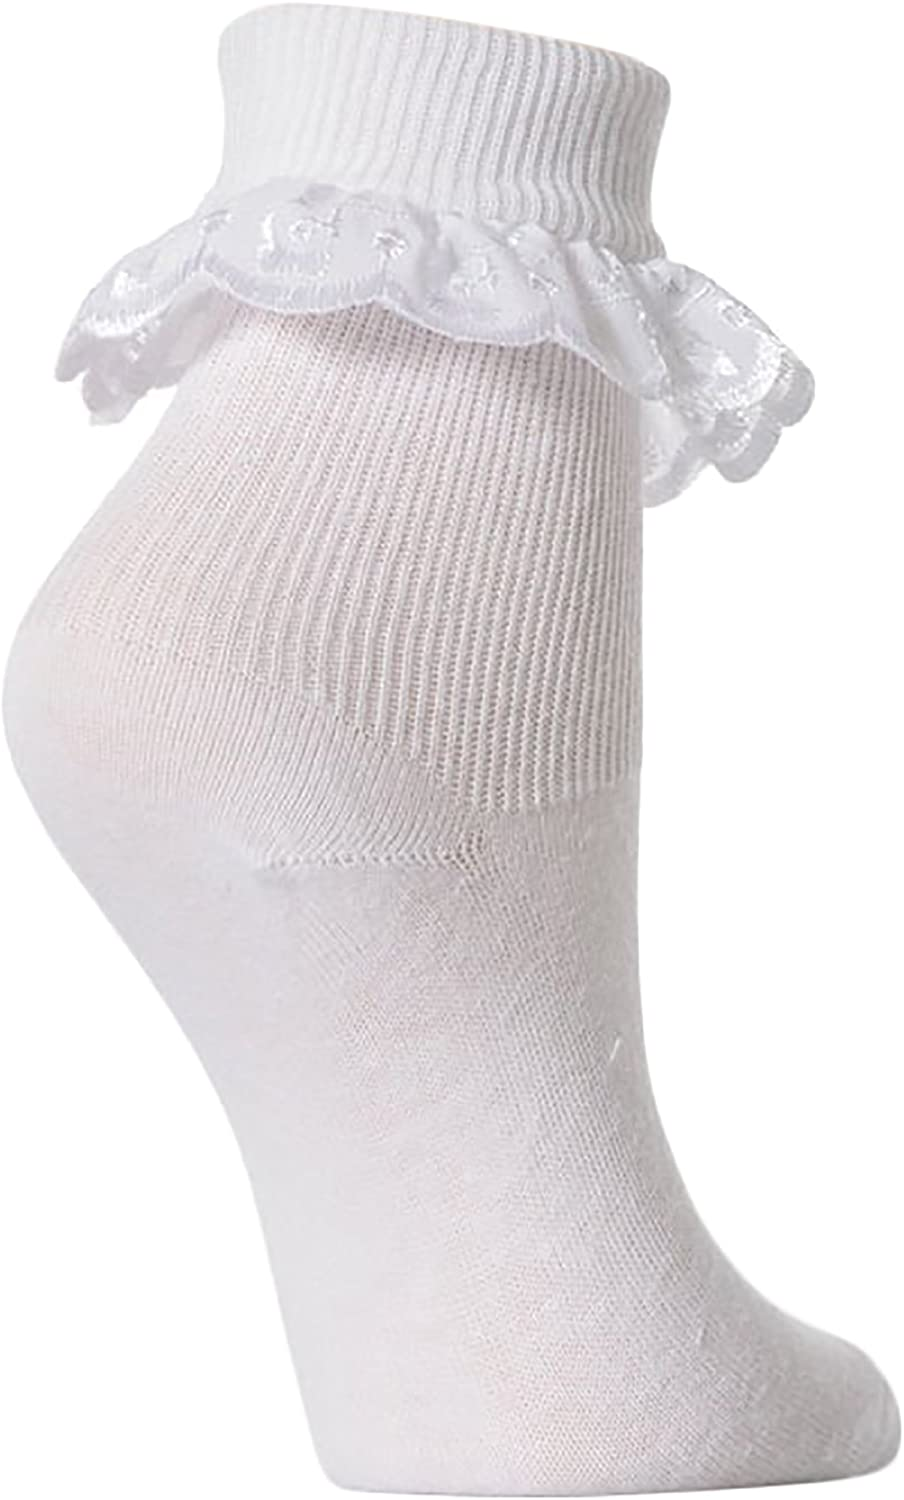 baby girls white ankle socks by Soft Touch kids lace broderie angelaise lacy